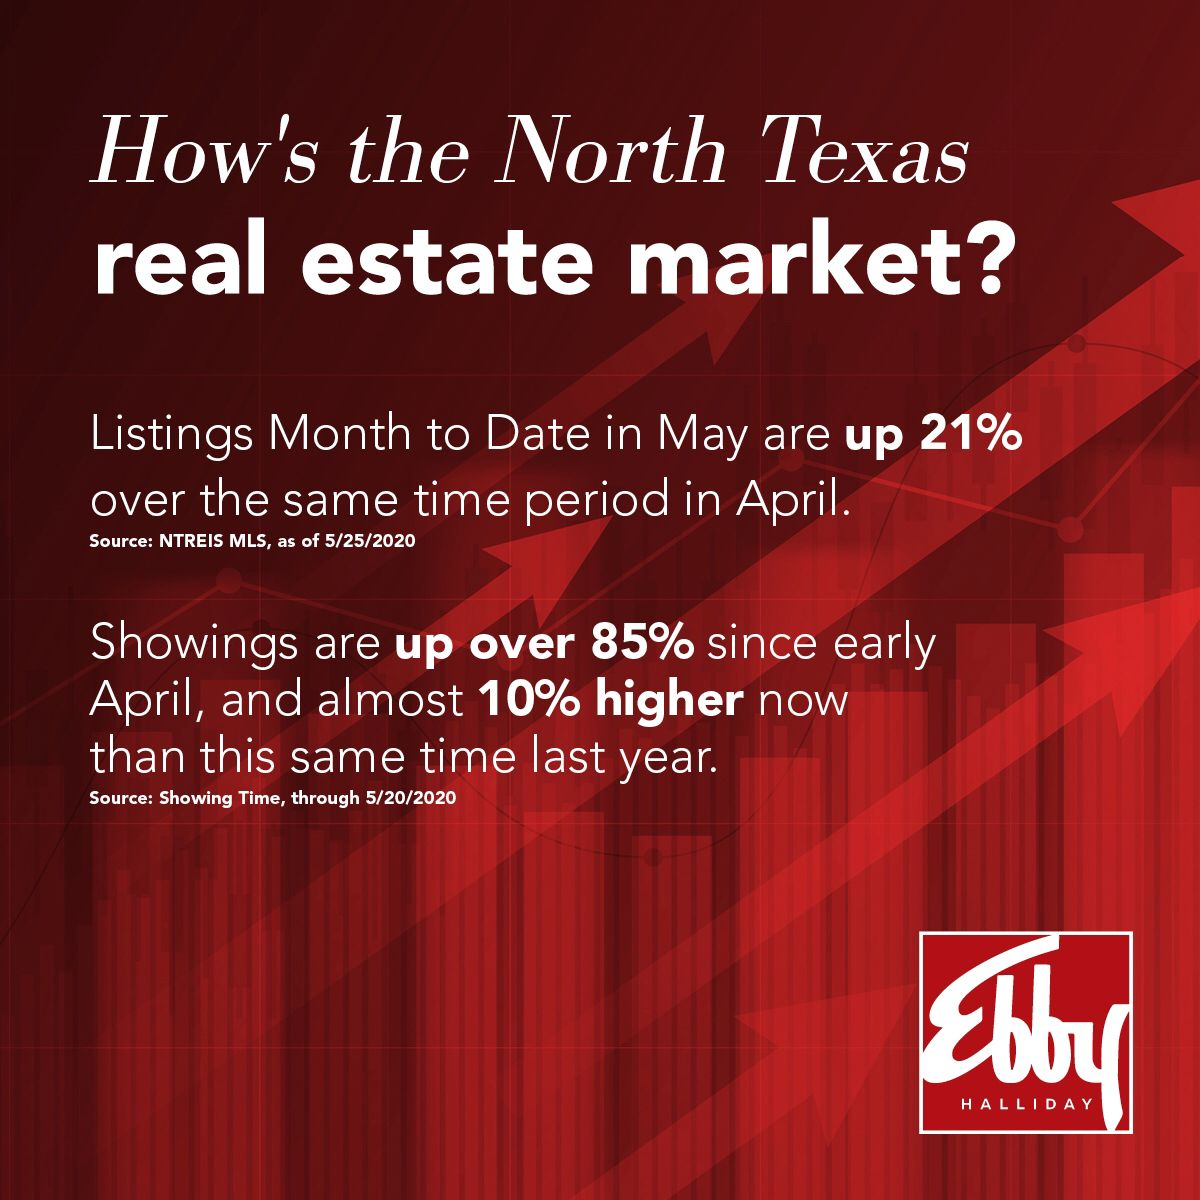 The latest North Texas statistics continue to support a resurging market with increasing buyer demand. In fact, now is a great time to consider listing your home for sale. Curious what your home is worth and what the market looks like in your neighborhood? Contact me today for an in-person or virtual consultation.    #homes #realestate  #luxury #design #property #home #homedecor #homesweethome #newhouse #interiordesign #interior #decor #carpet #StatStory #sellers #architecture #newhome #interio